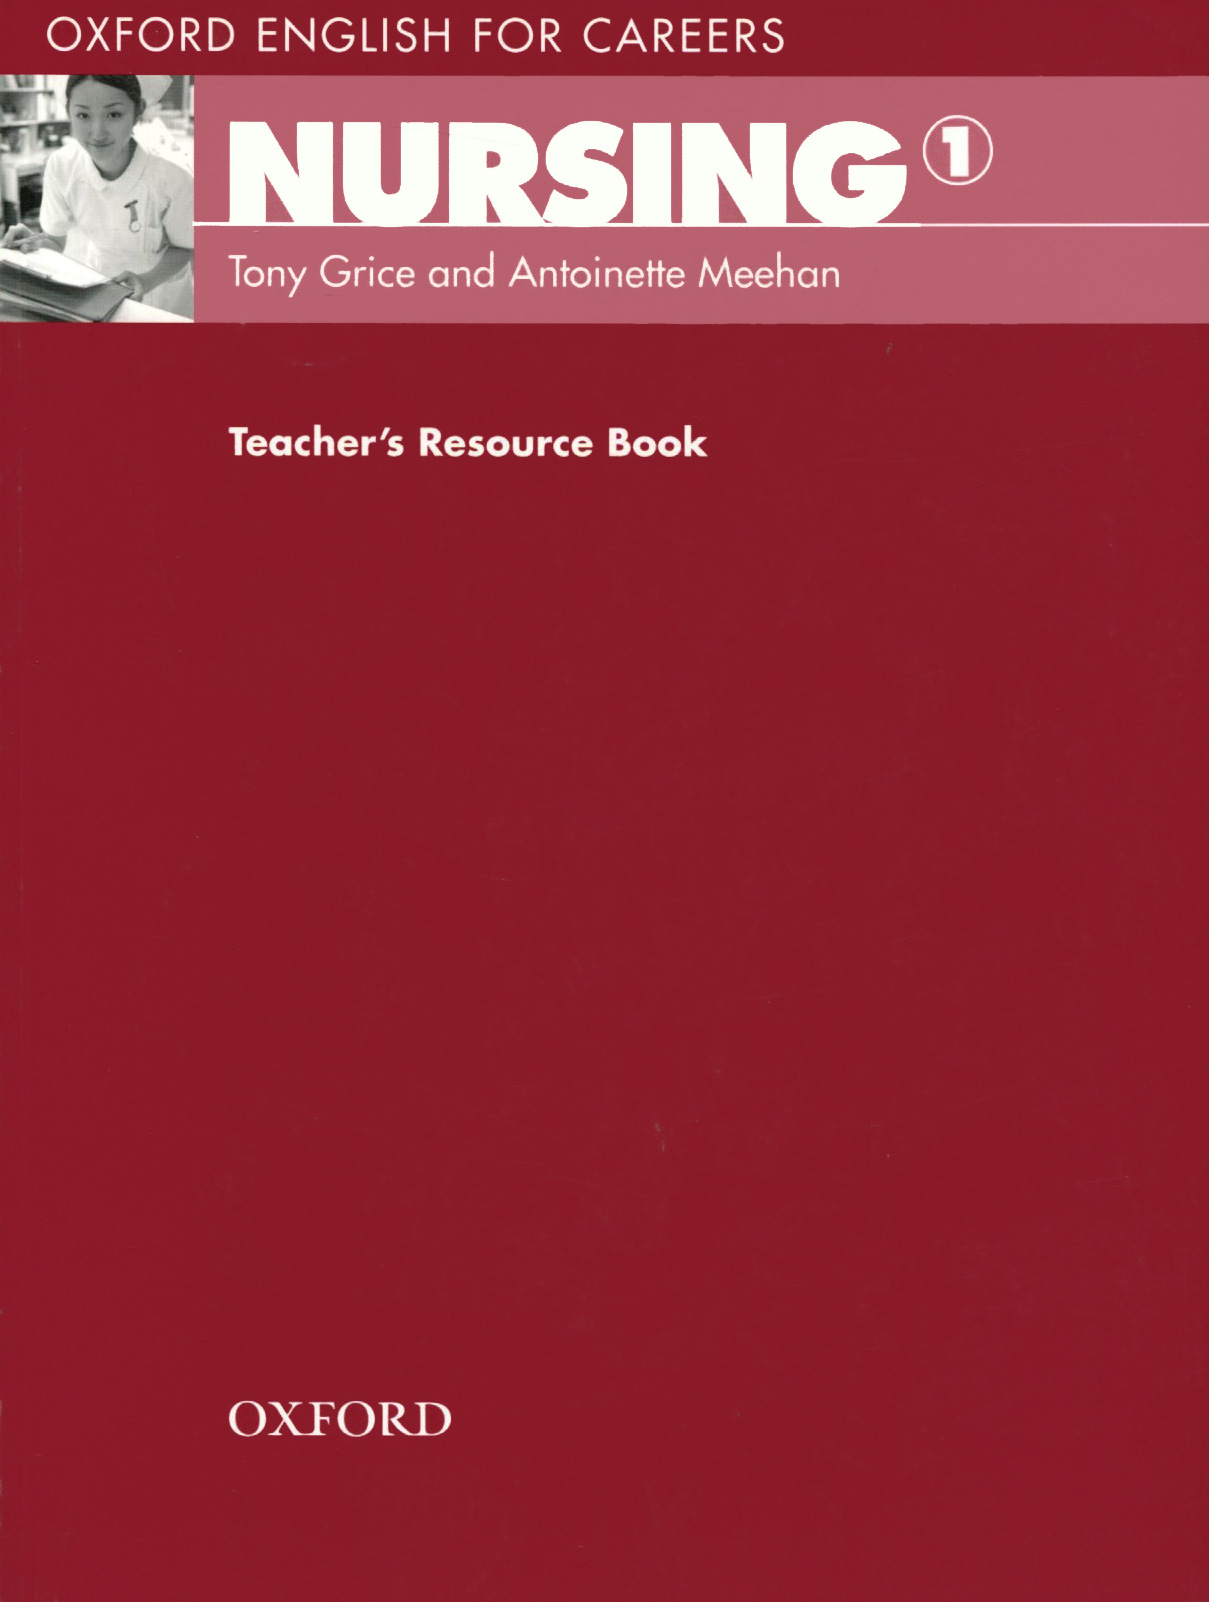 Oxford English for Careers: Nursing 1: Teacher's Resource Book tracey biscontini culinary careers for dummies